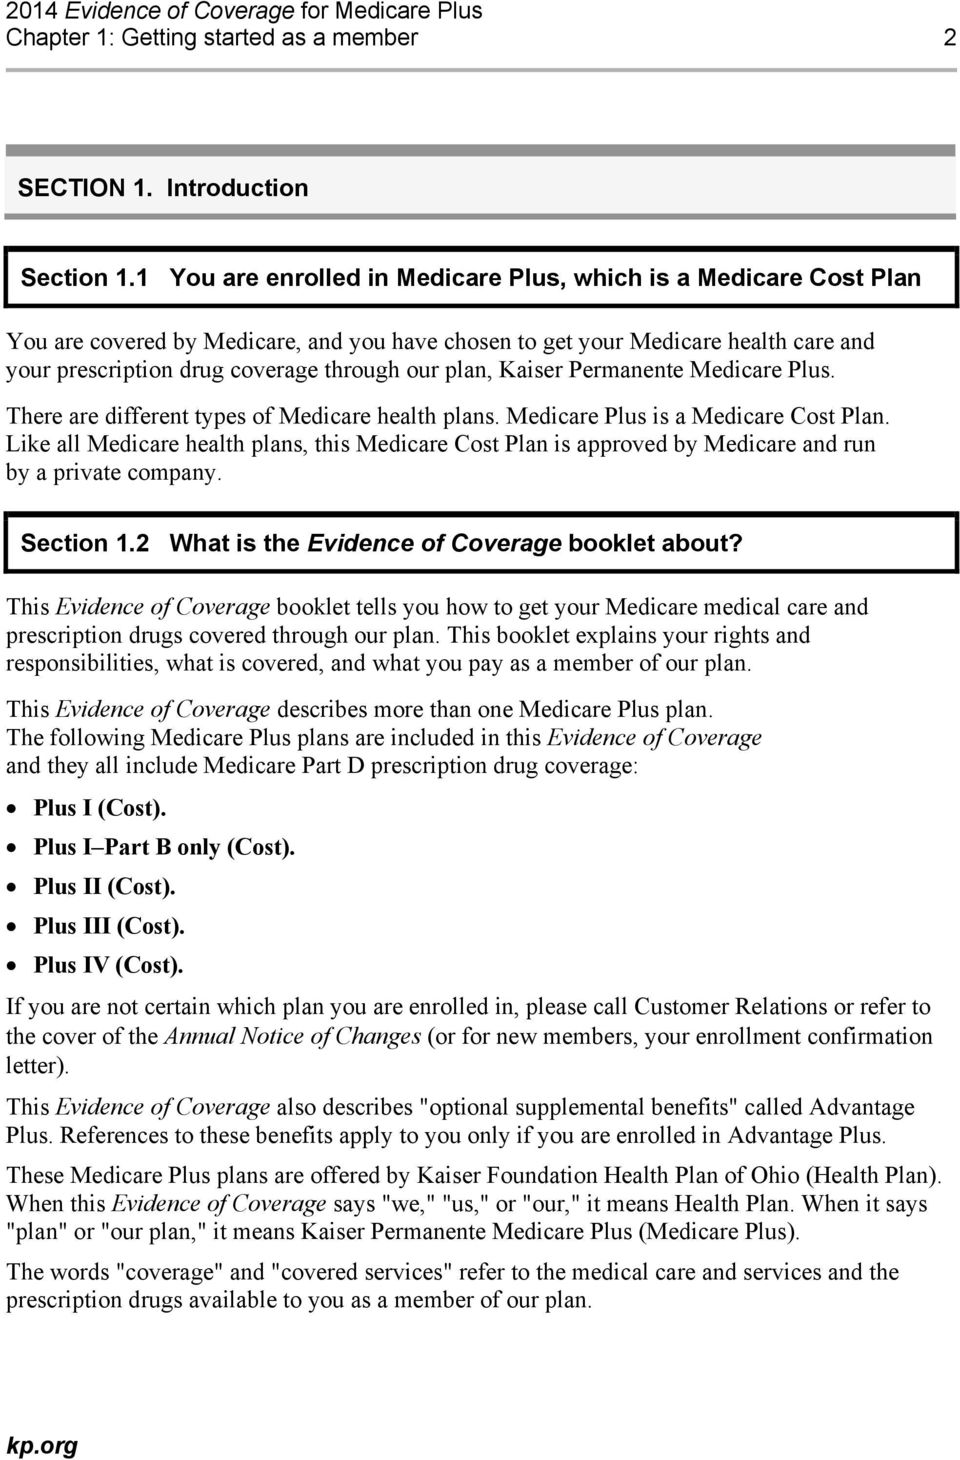 plan, Kaiser Permanente Medicare Plus. There are different types of Medicare health plans. Medicare Plus is a Medicare Cost Plan.